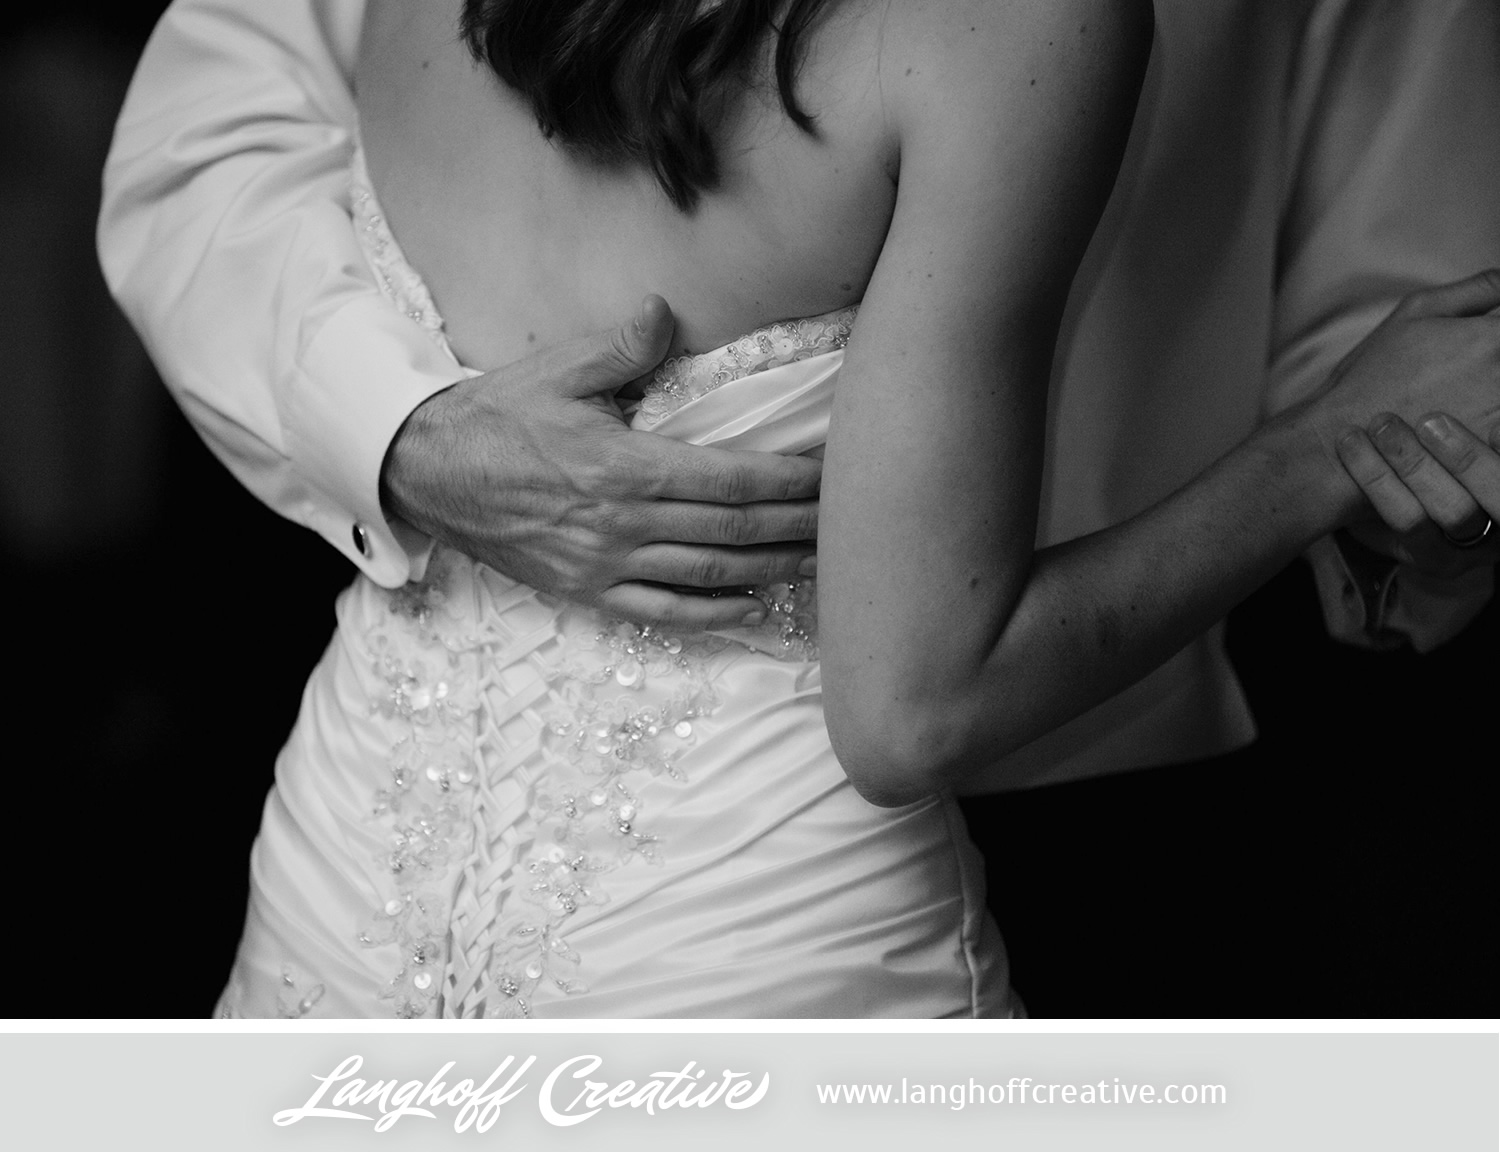 PlainfieldWedding-2013-LanghoffCreative-MattErin-24-photo.jpg